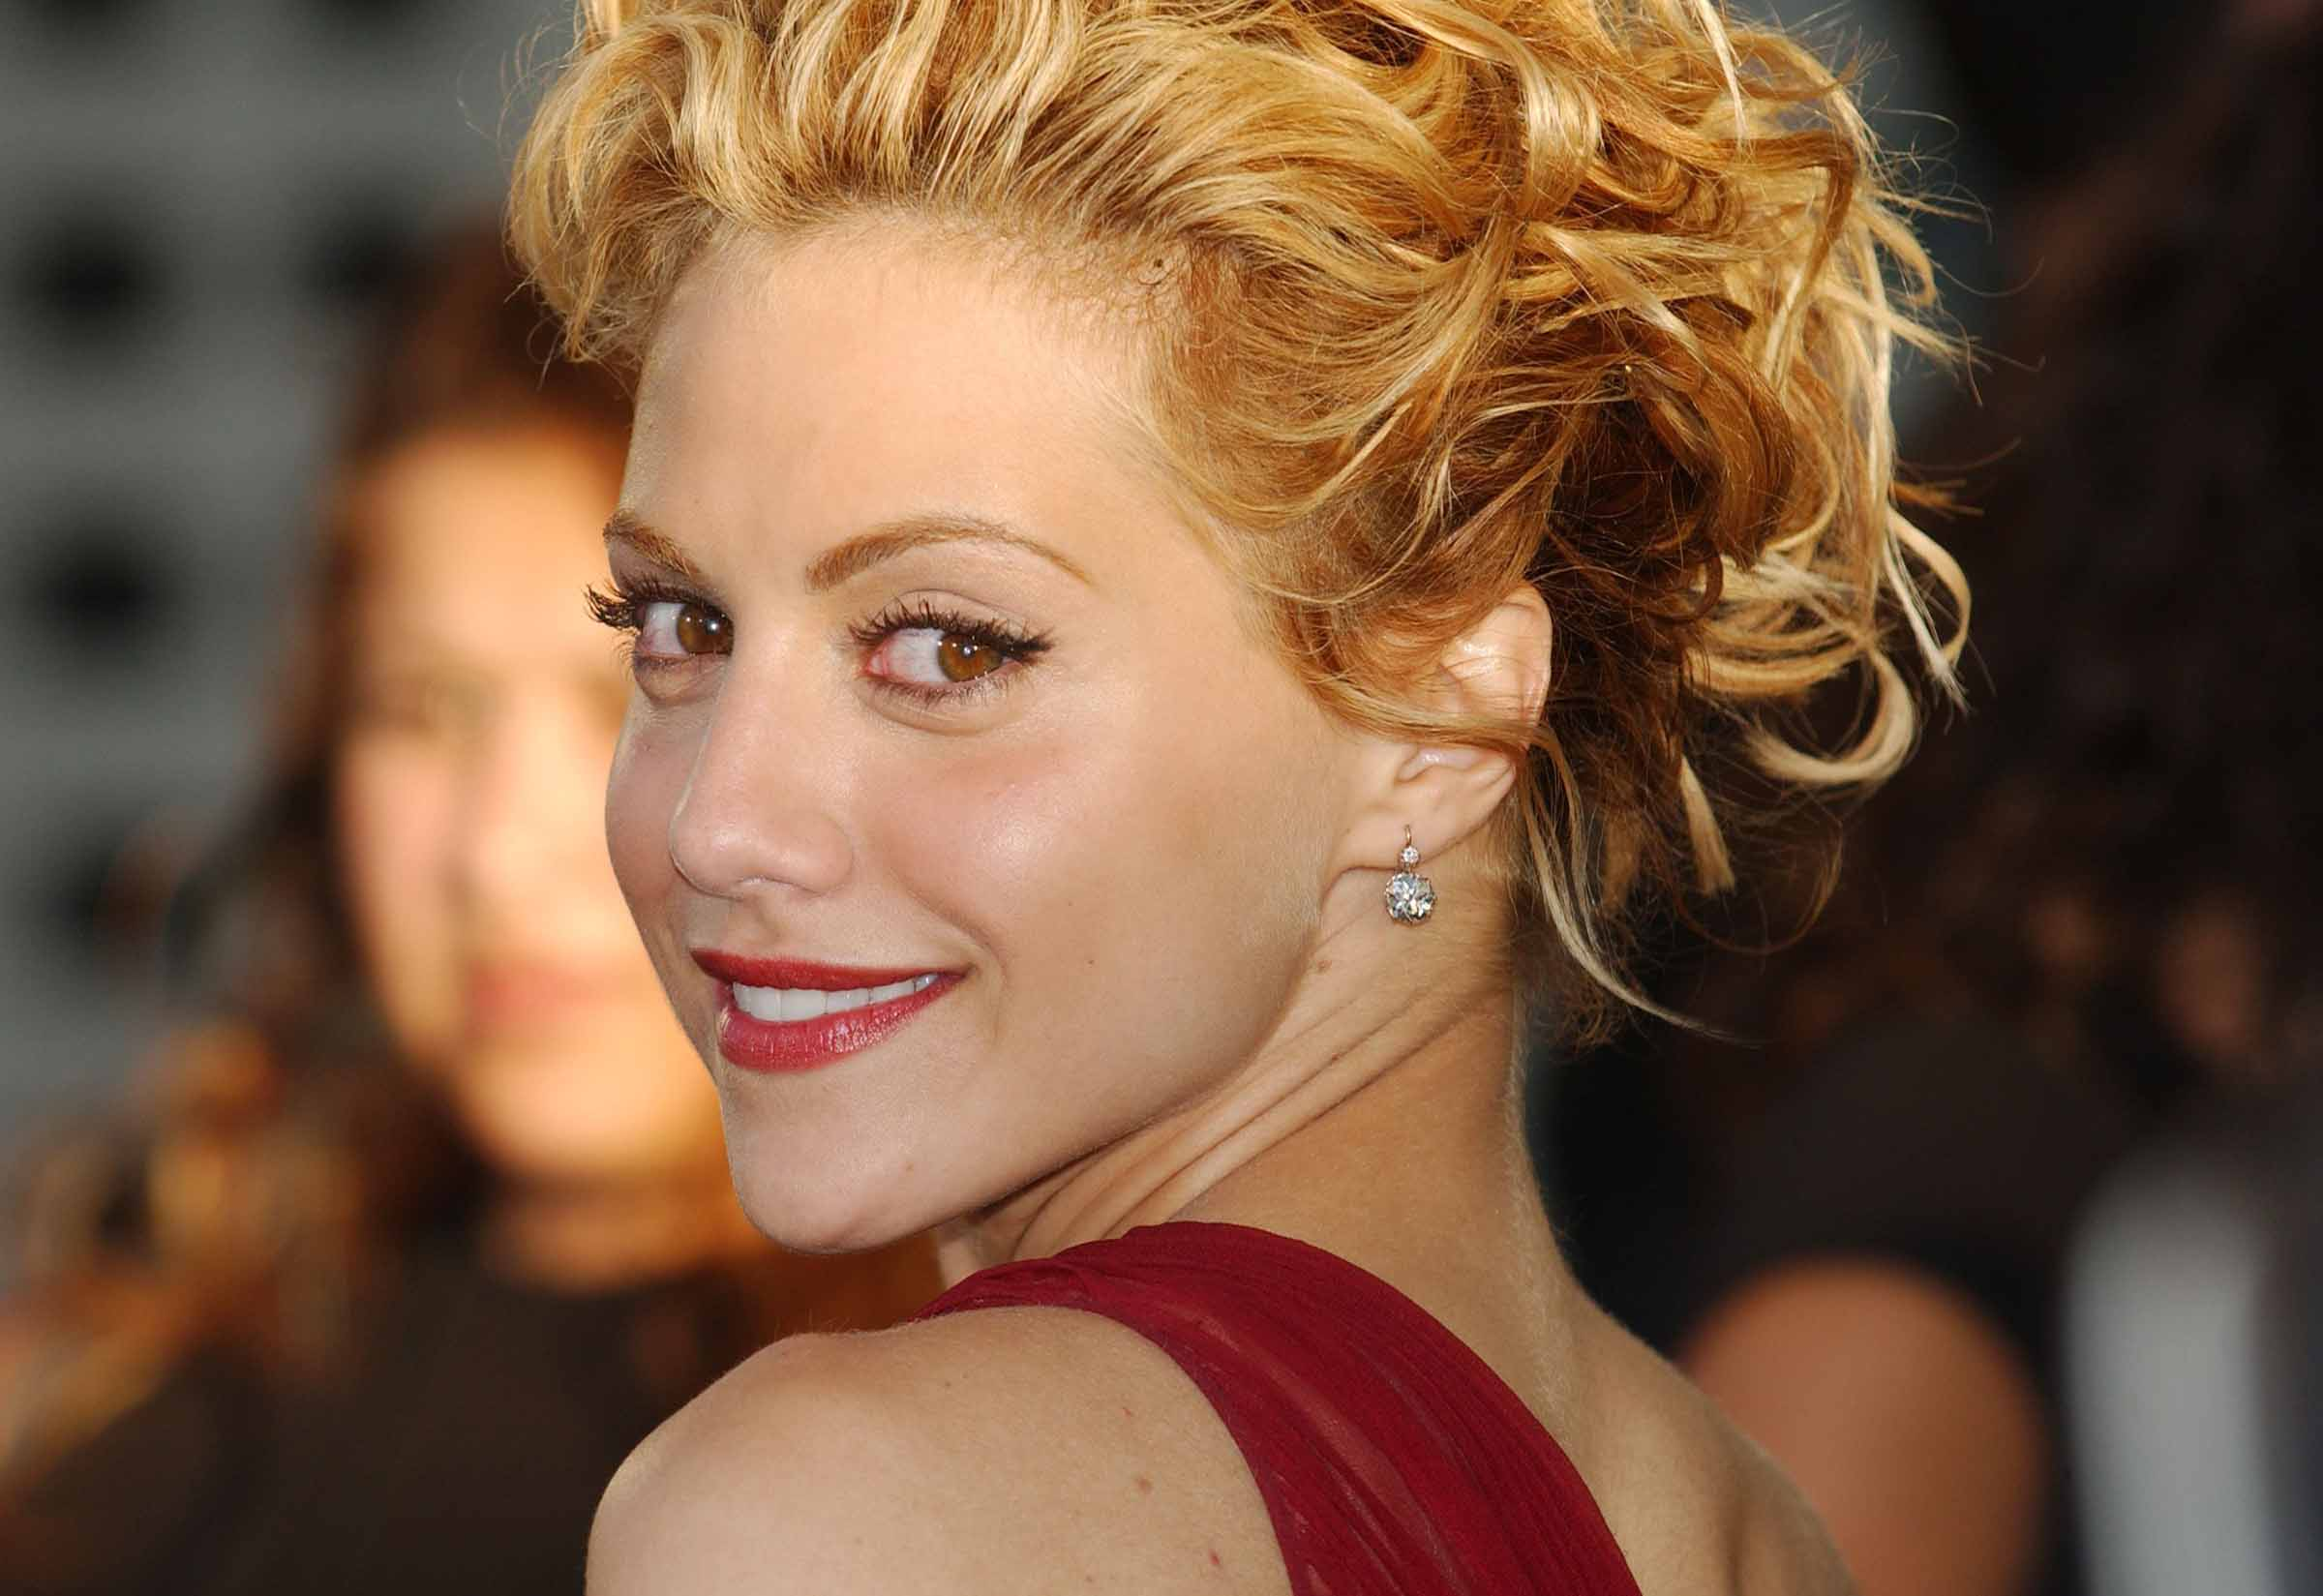 Here's why the strange death of Brittany Murphy still haunts us – Film Daily